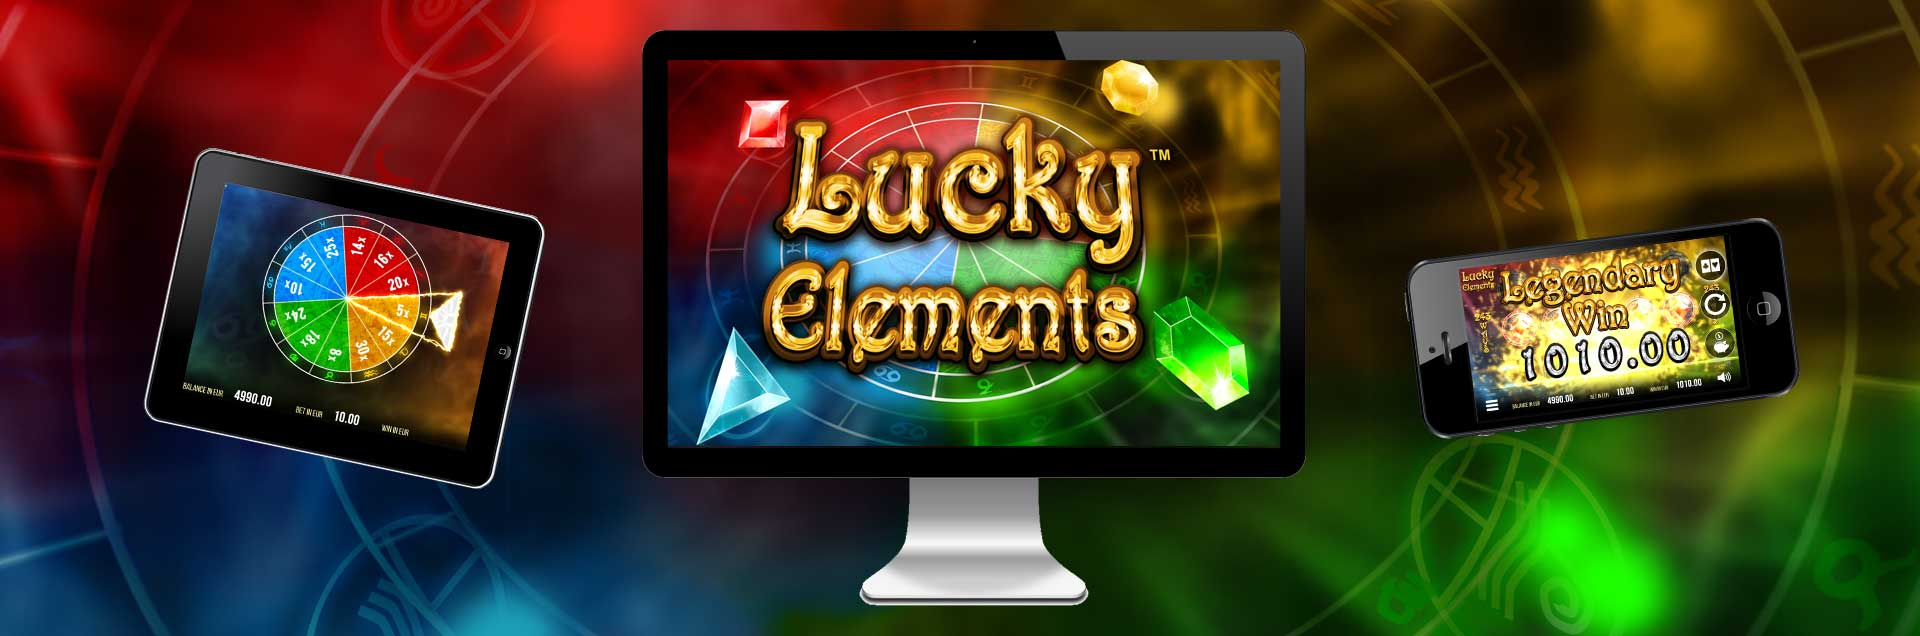 Lucky Elements Header HomePage Image